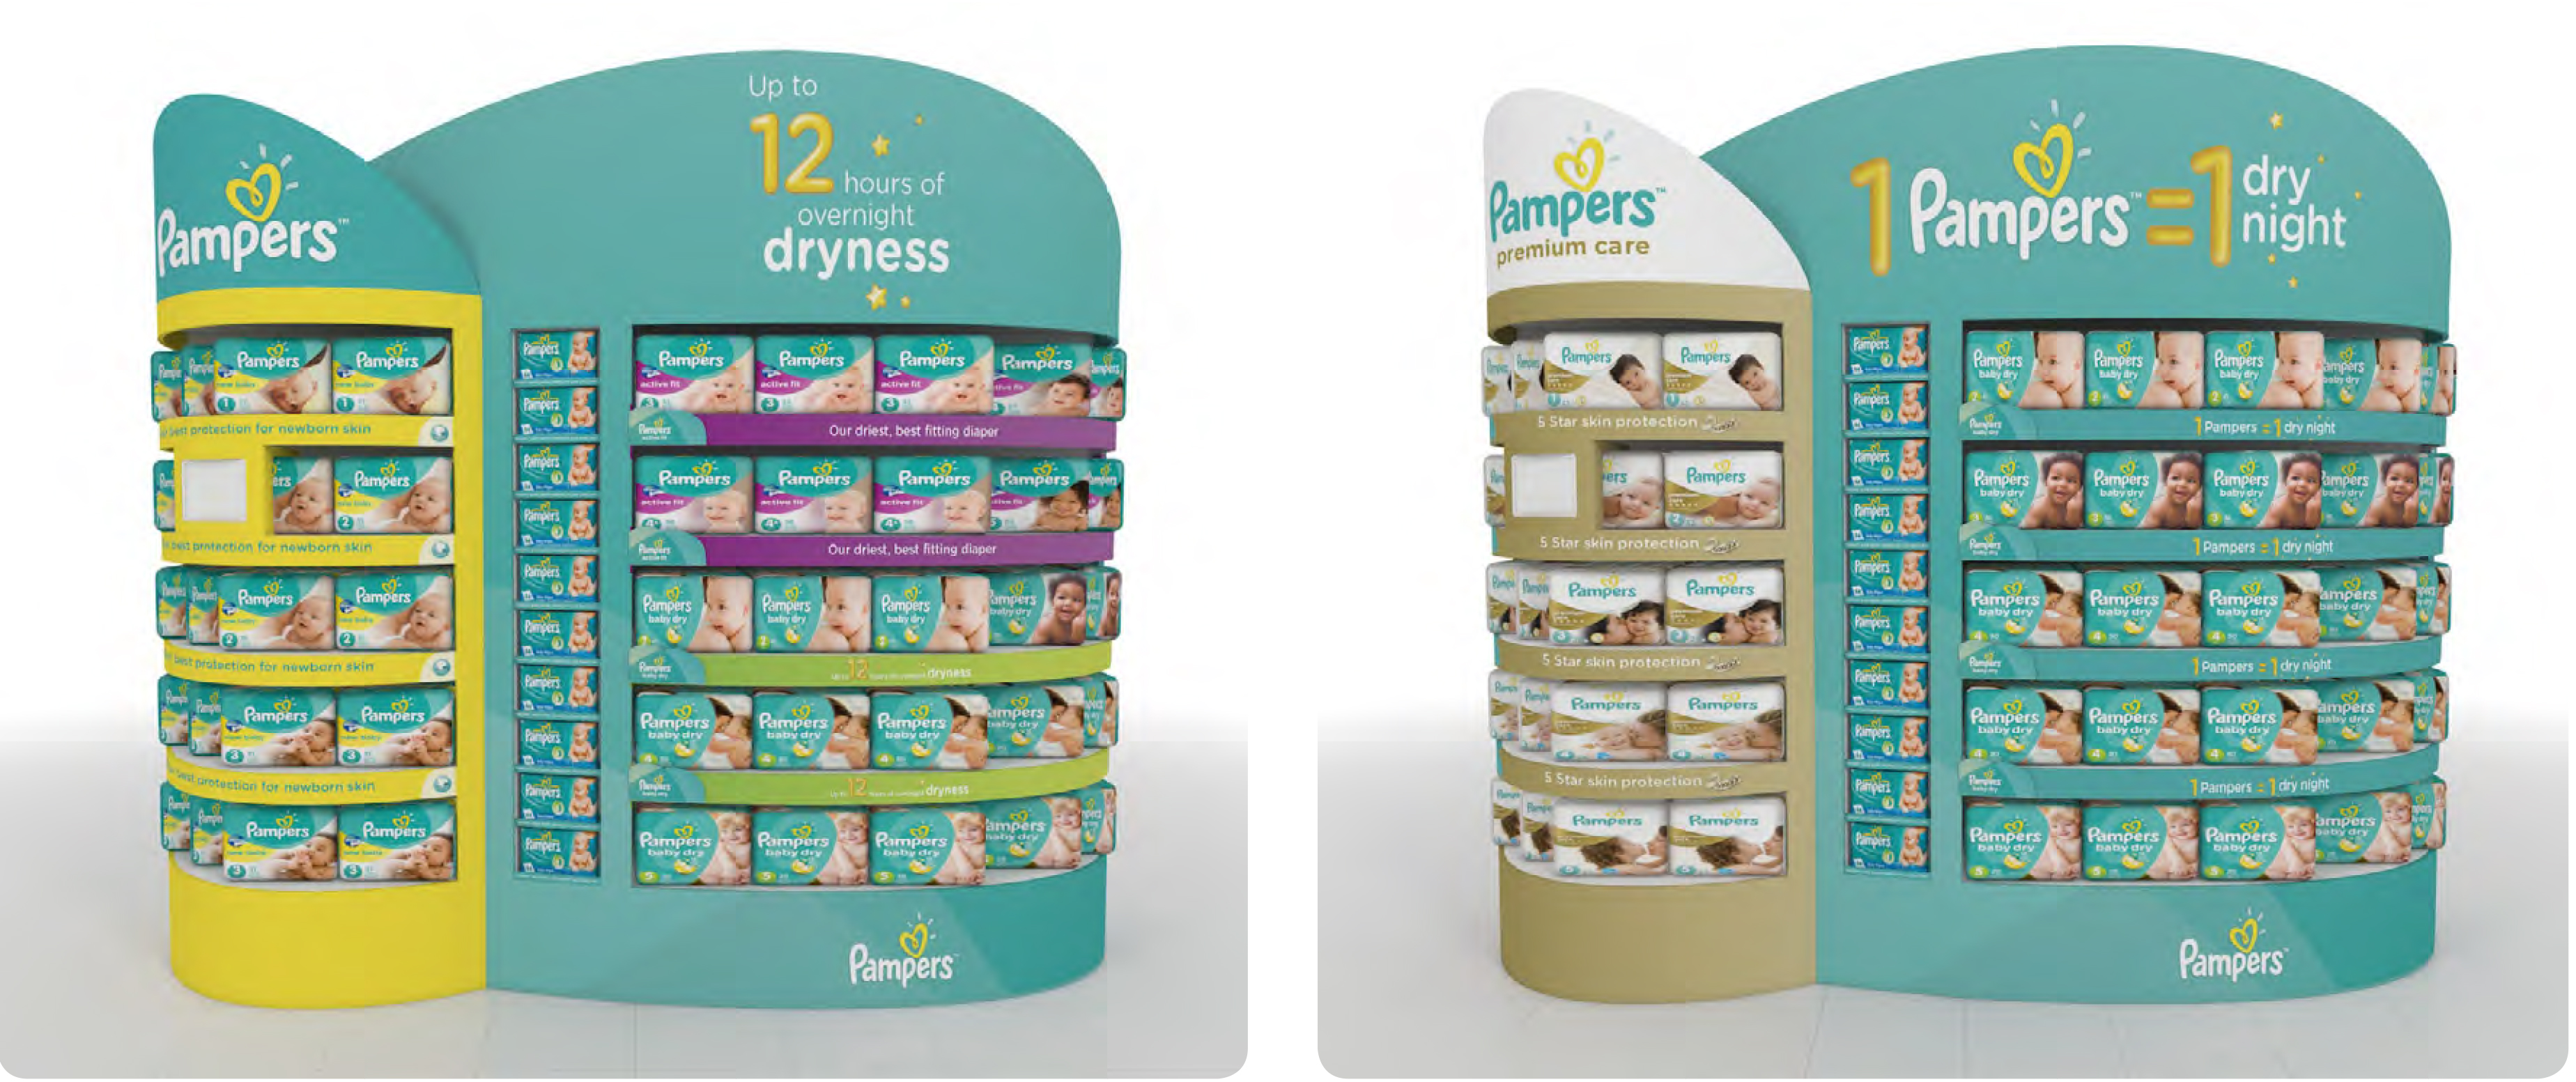 Pampers_08